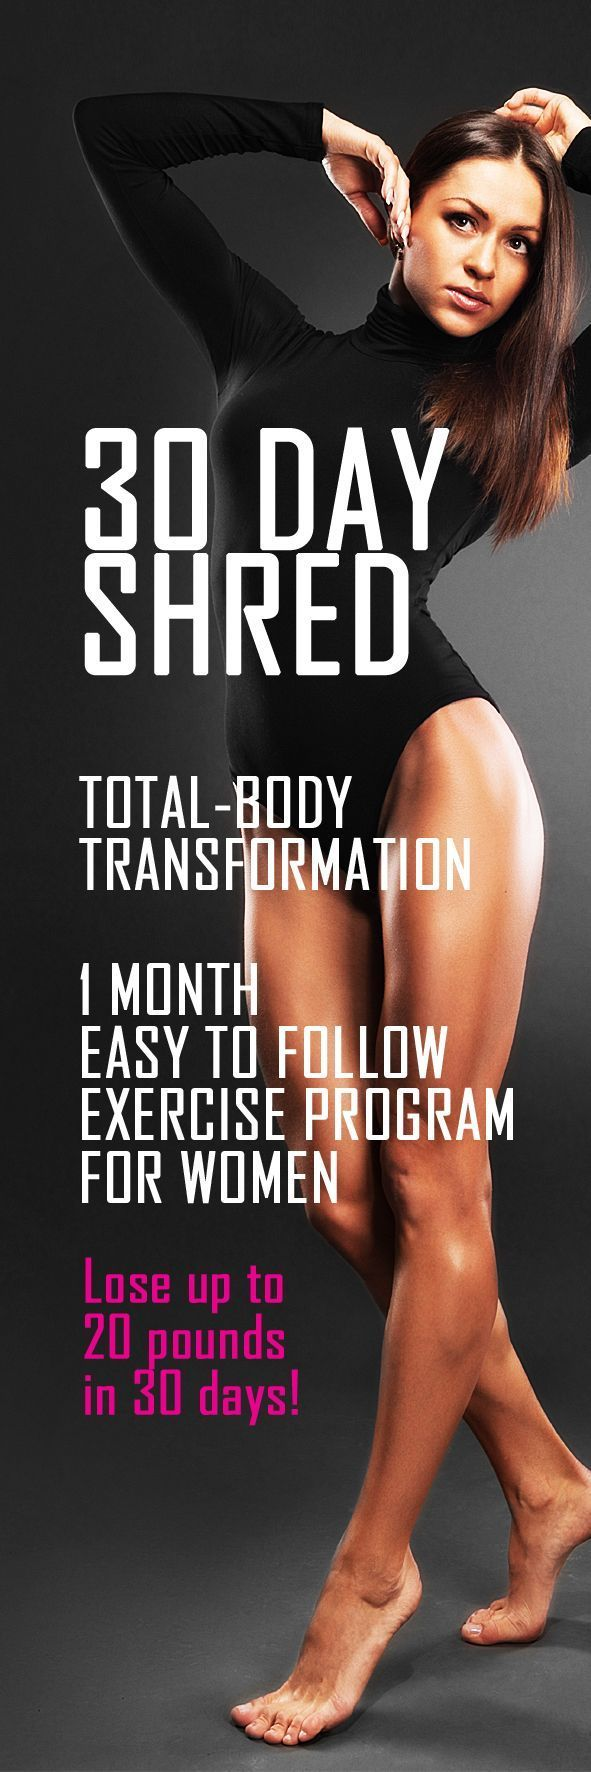 This really works! Jillian Michaels 30 Day Shred Level 1 will burn fat with this interval training fitness system, combining strength, cardio, and abs workouts that blast calories #workout